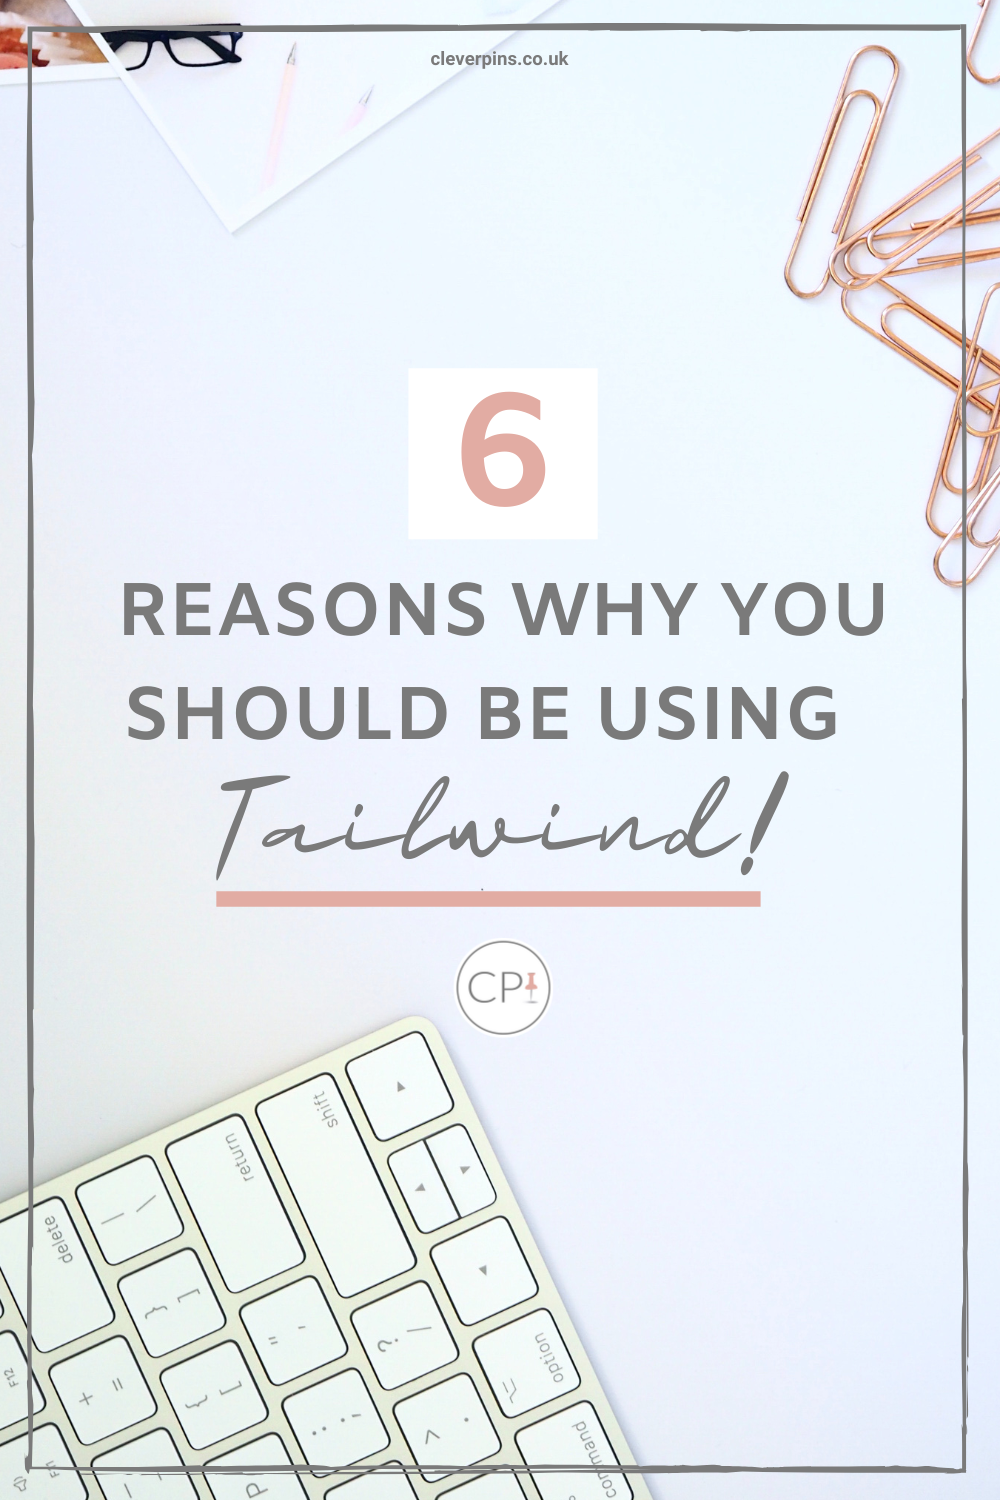 Pin Template with text '6 reasons why you should be using Tailwind' on a flatlay with apple keyboard and pink paperclips.